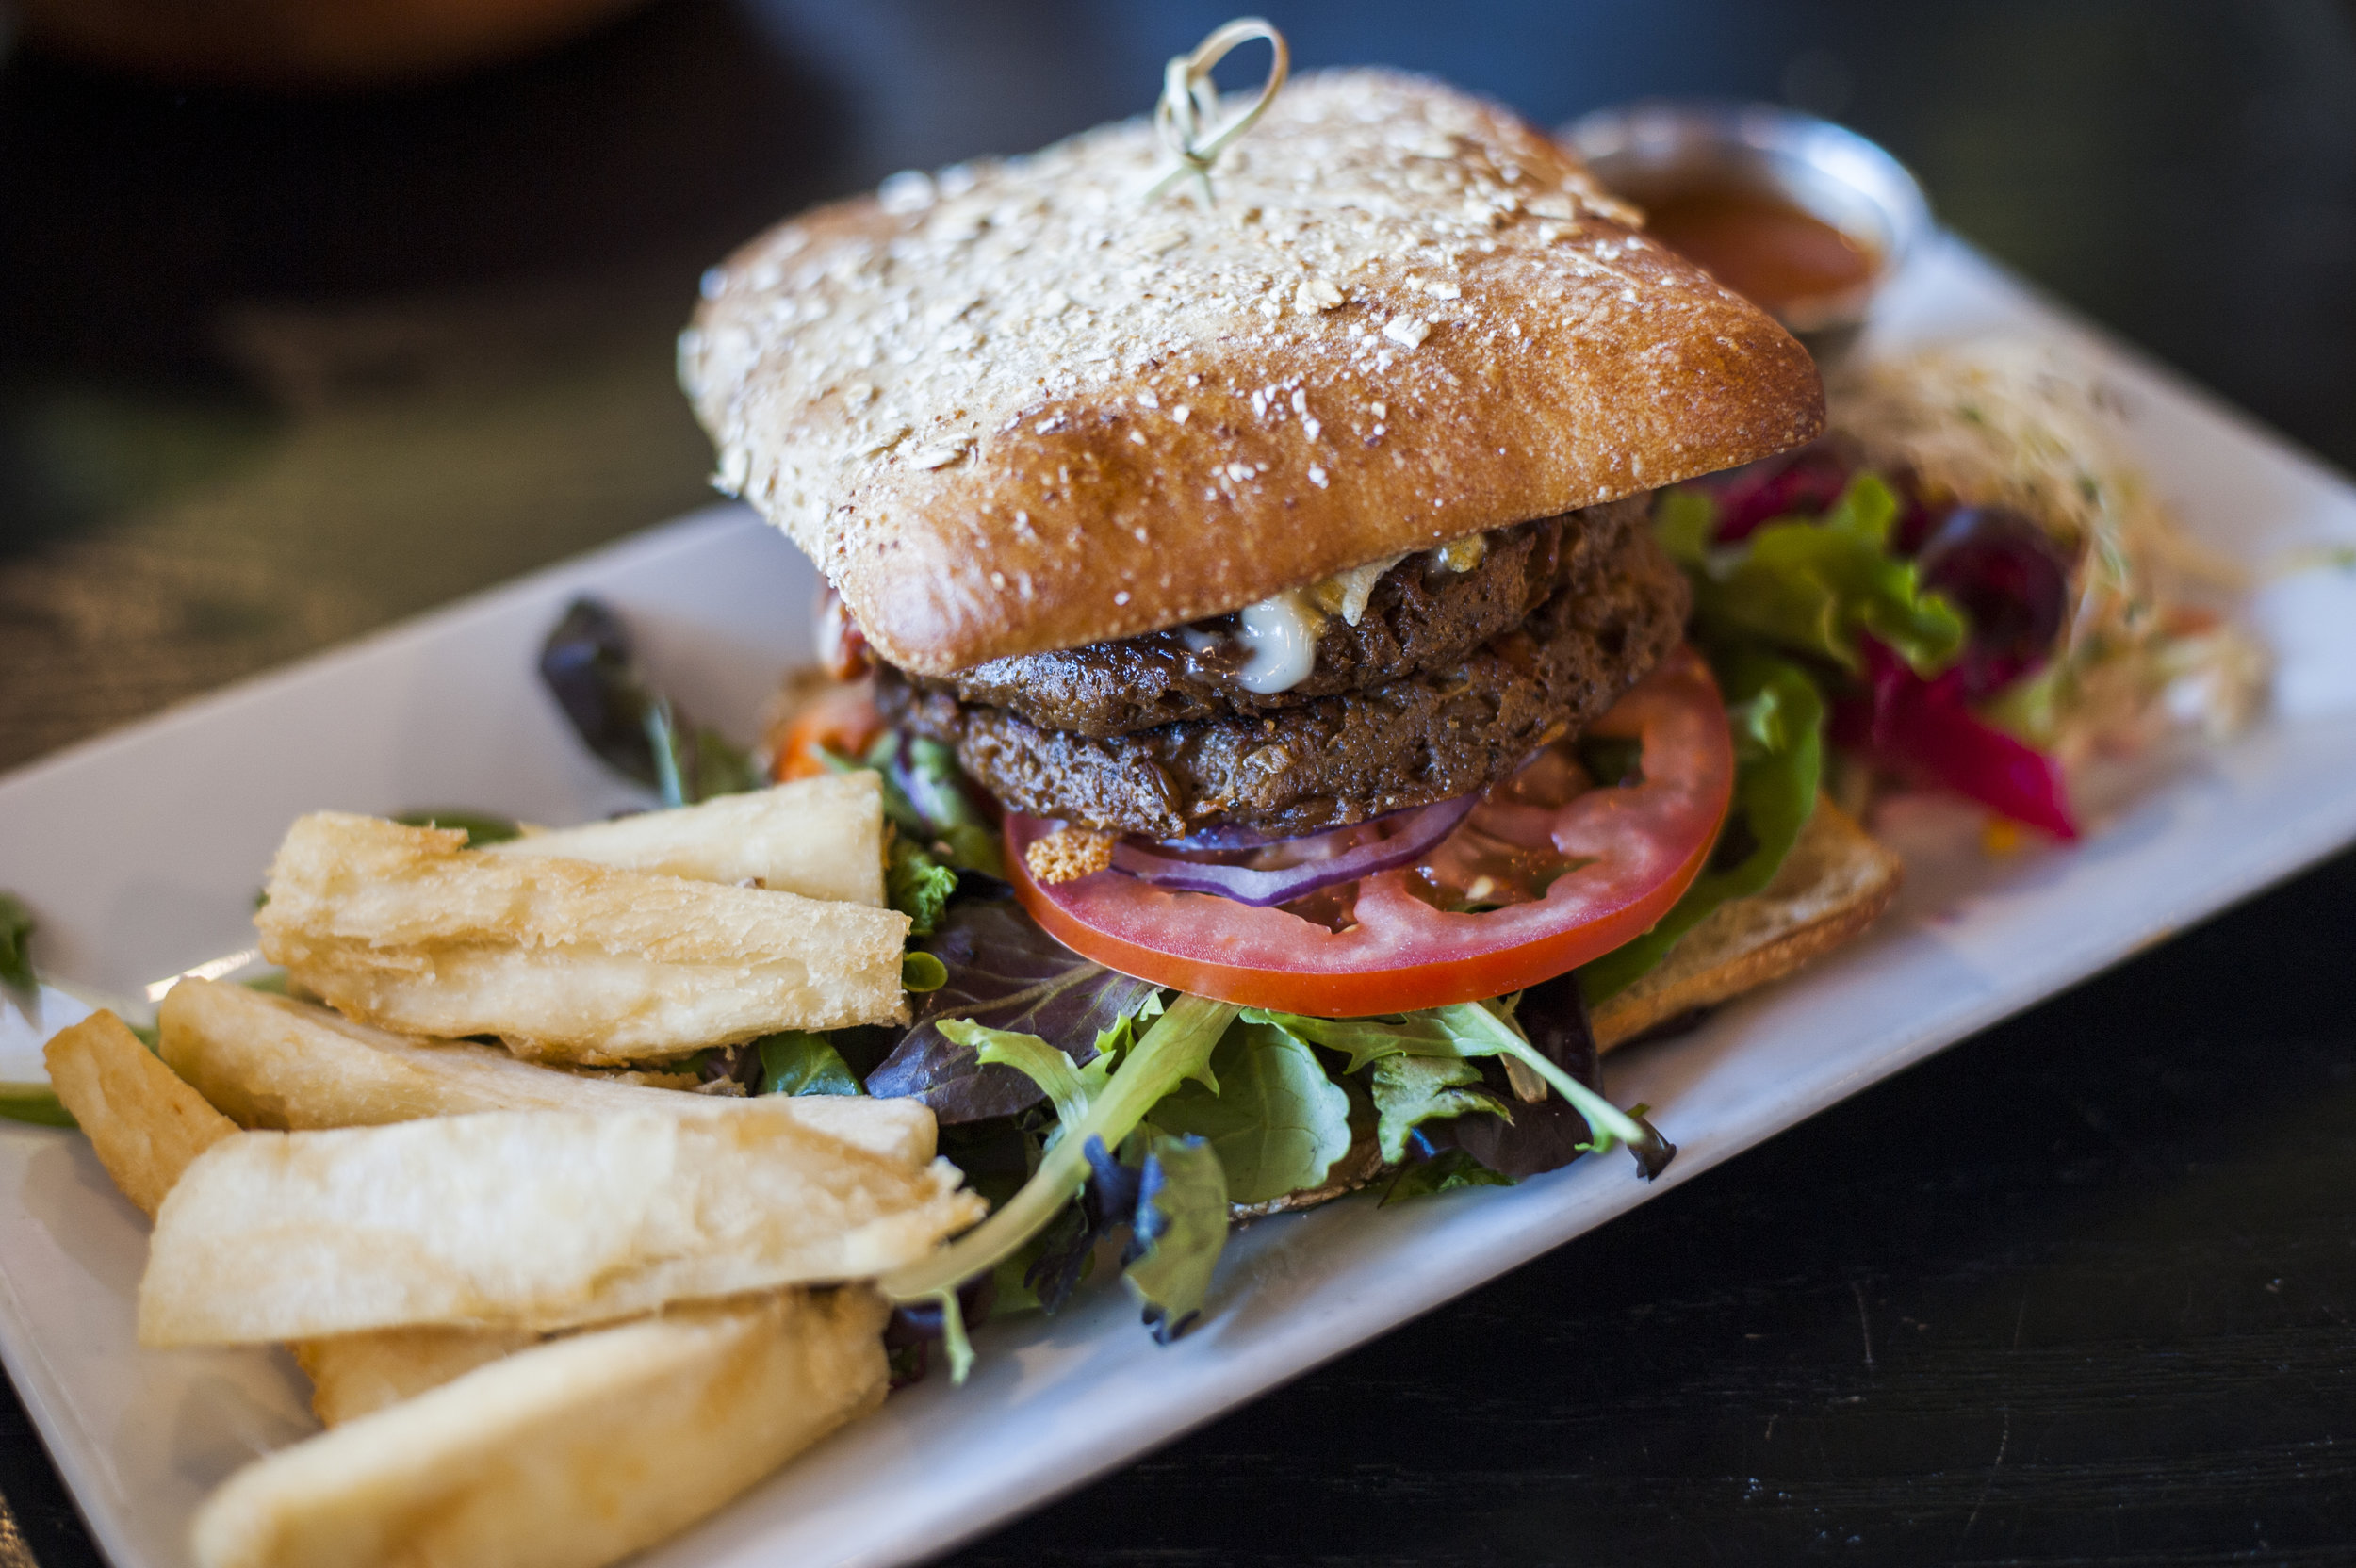 Between whole wheat ciabatta, The Proper Whopper brings together vegan burger patties, melted vegan cheese, secret sweet & spicy sauce, red onion, tomato, organic baby greens with a helping of yuca fries.